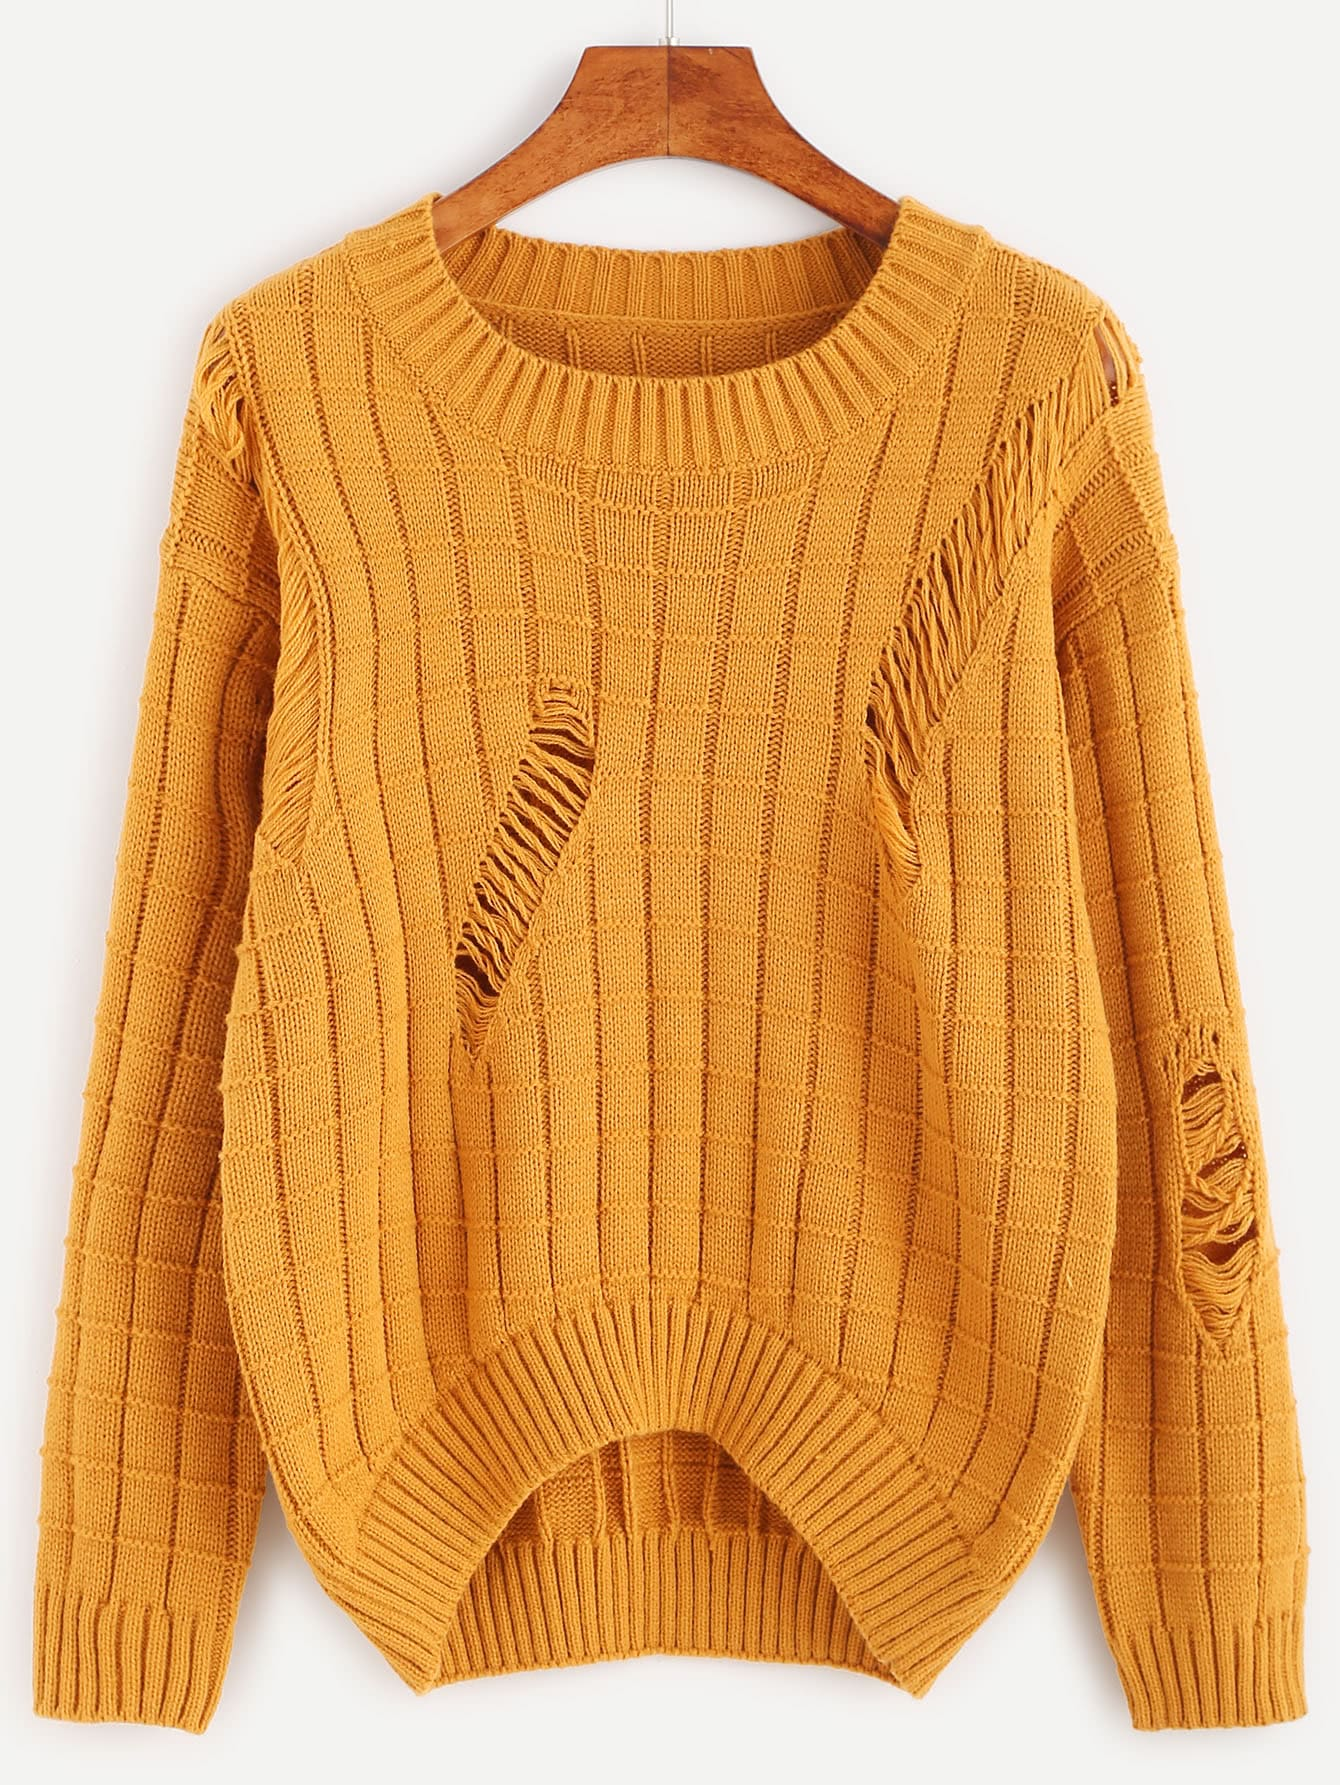 Mustard Geo Pattern Ripped High Low SweaterMustard Geo Pattern Ripped High Low Sweater<br><br>color: Mustard<br>size: one-size